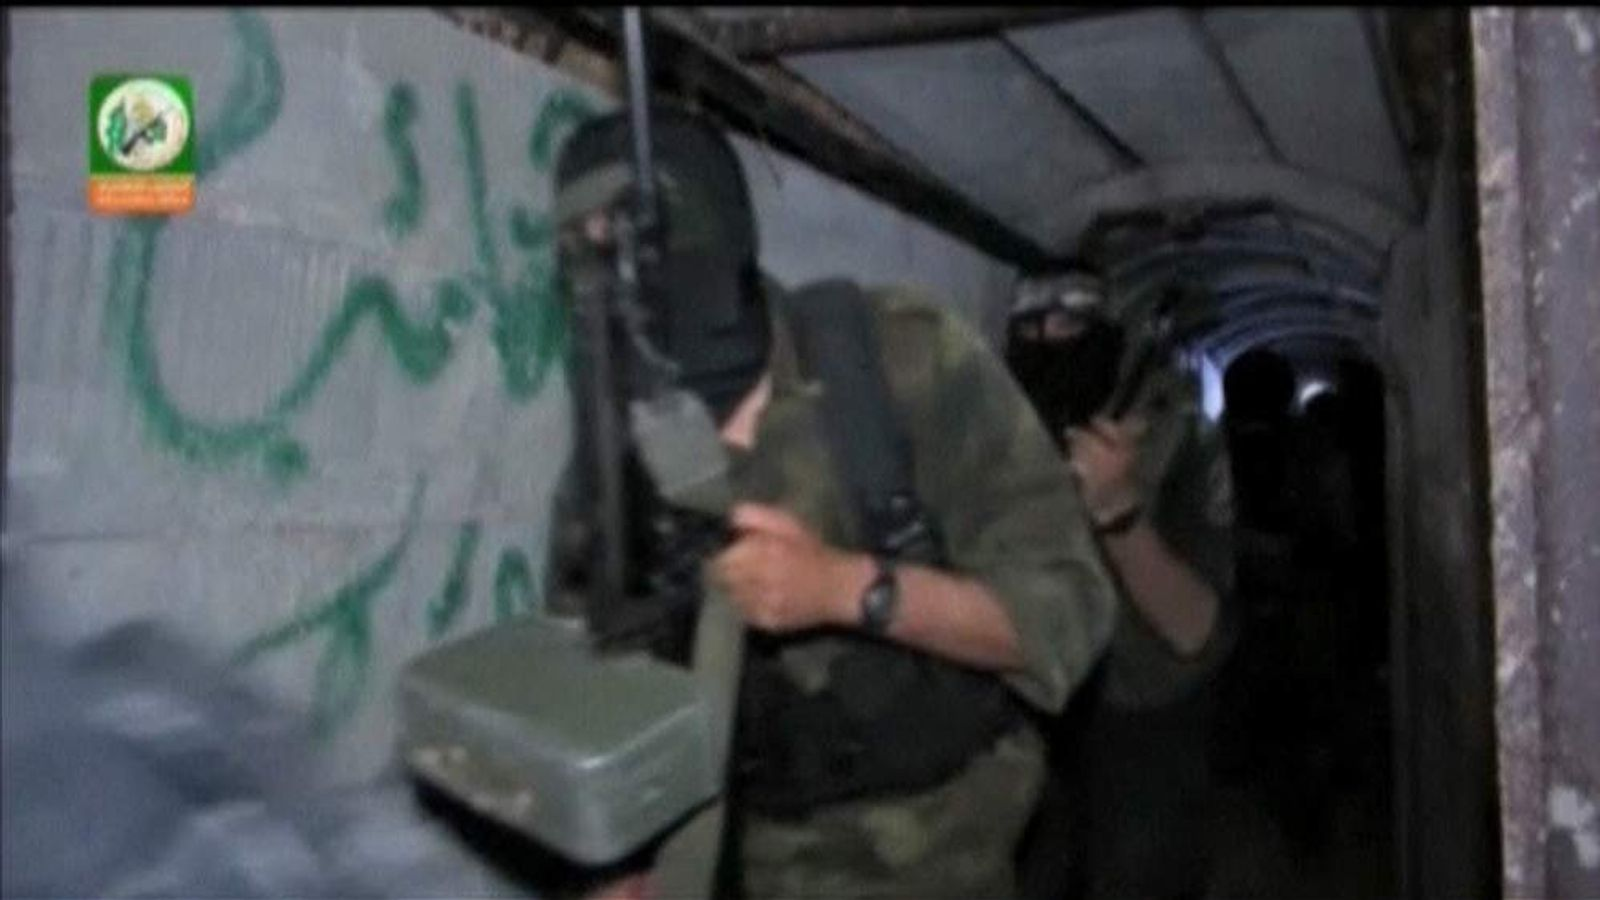 Hamas' armed wing release footage of a militant-used tunnel in Gaza